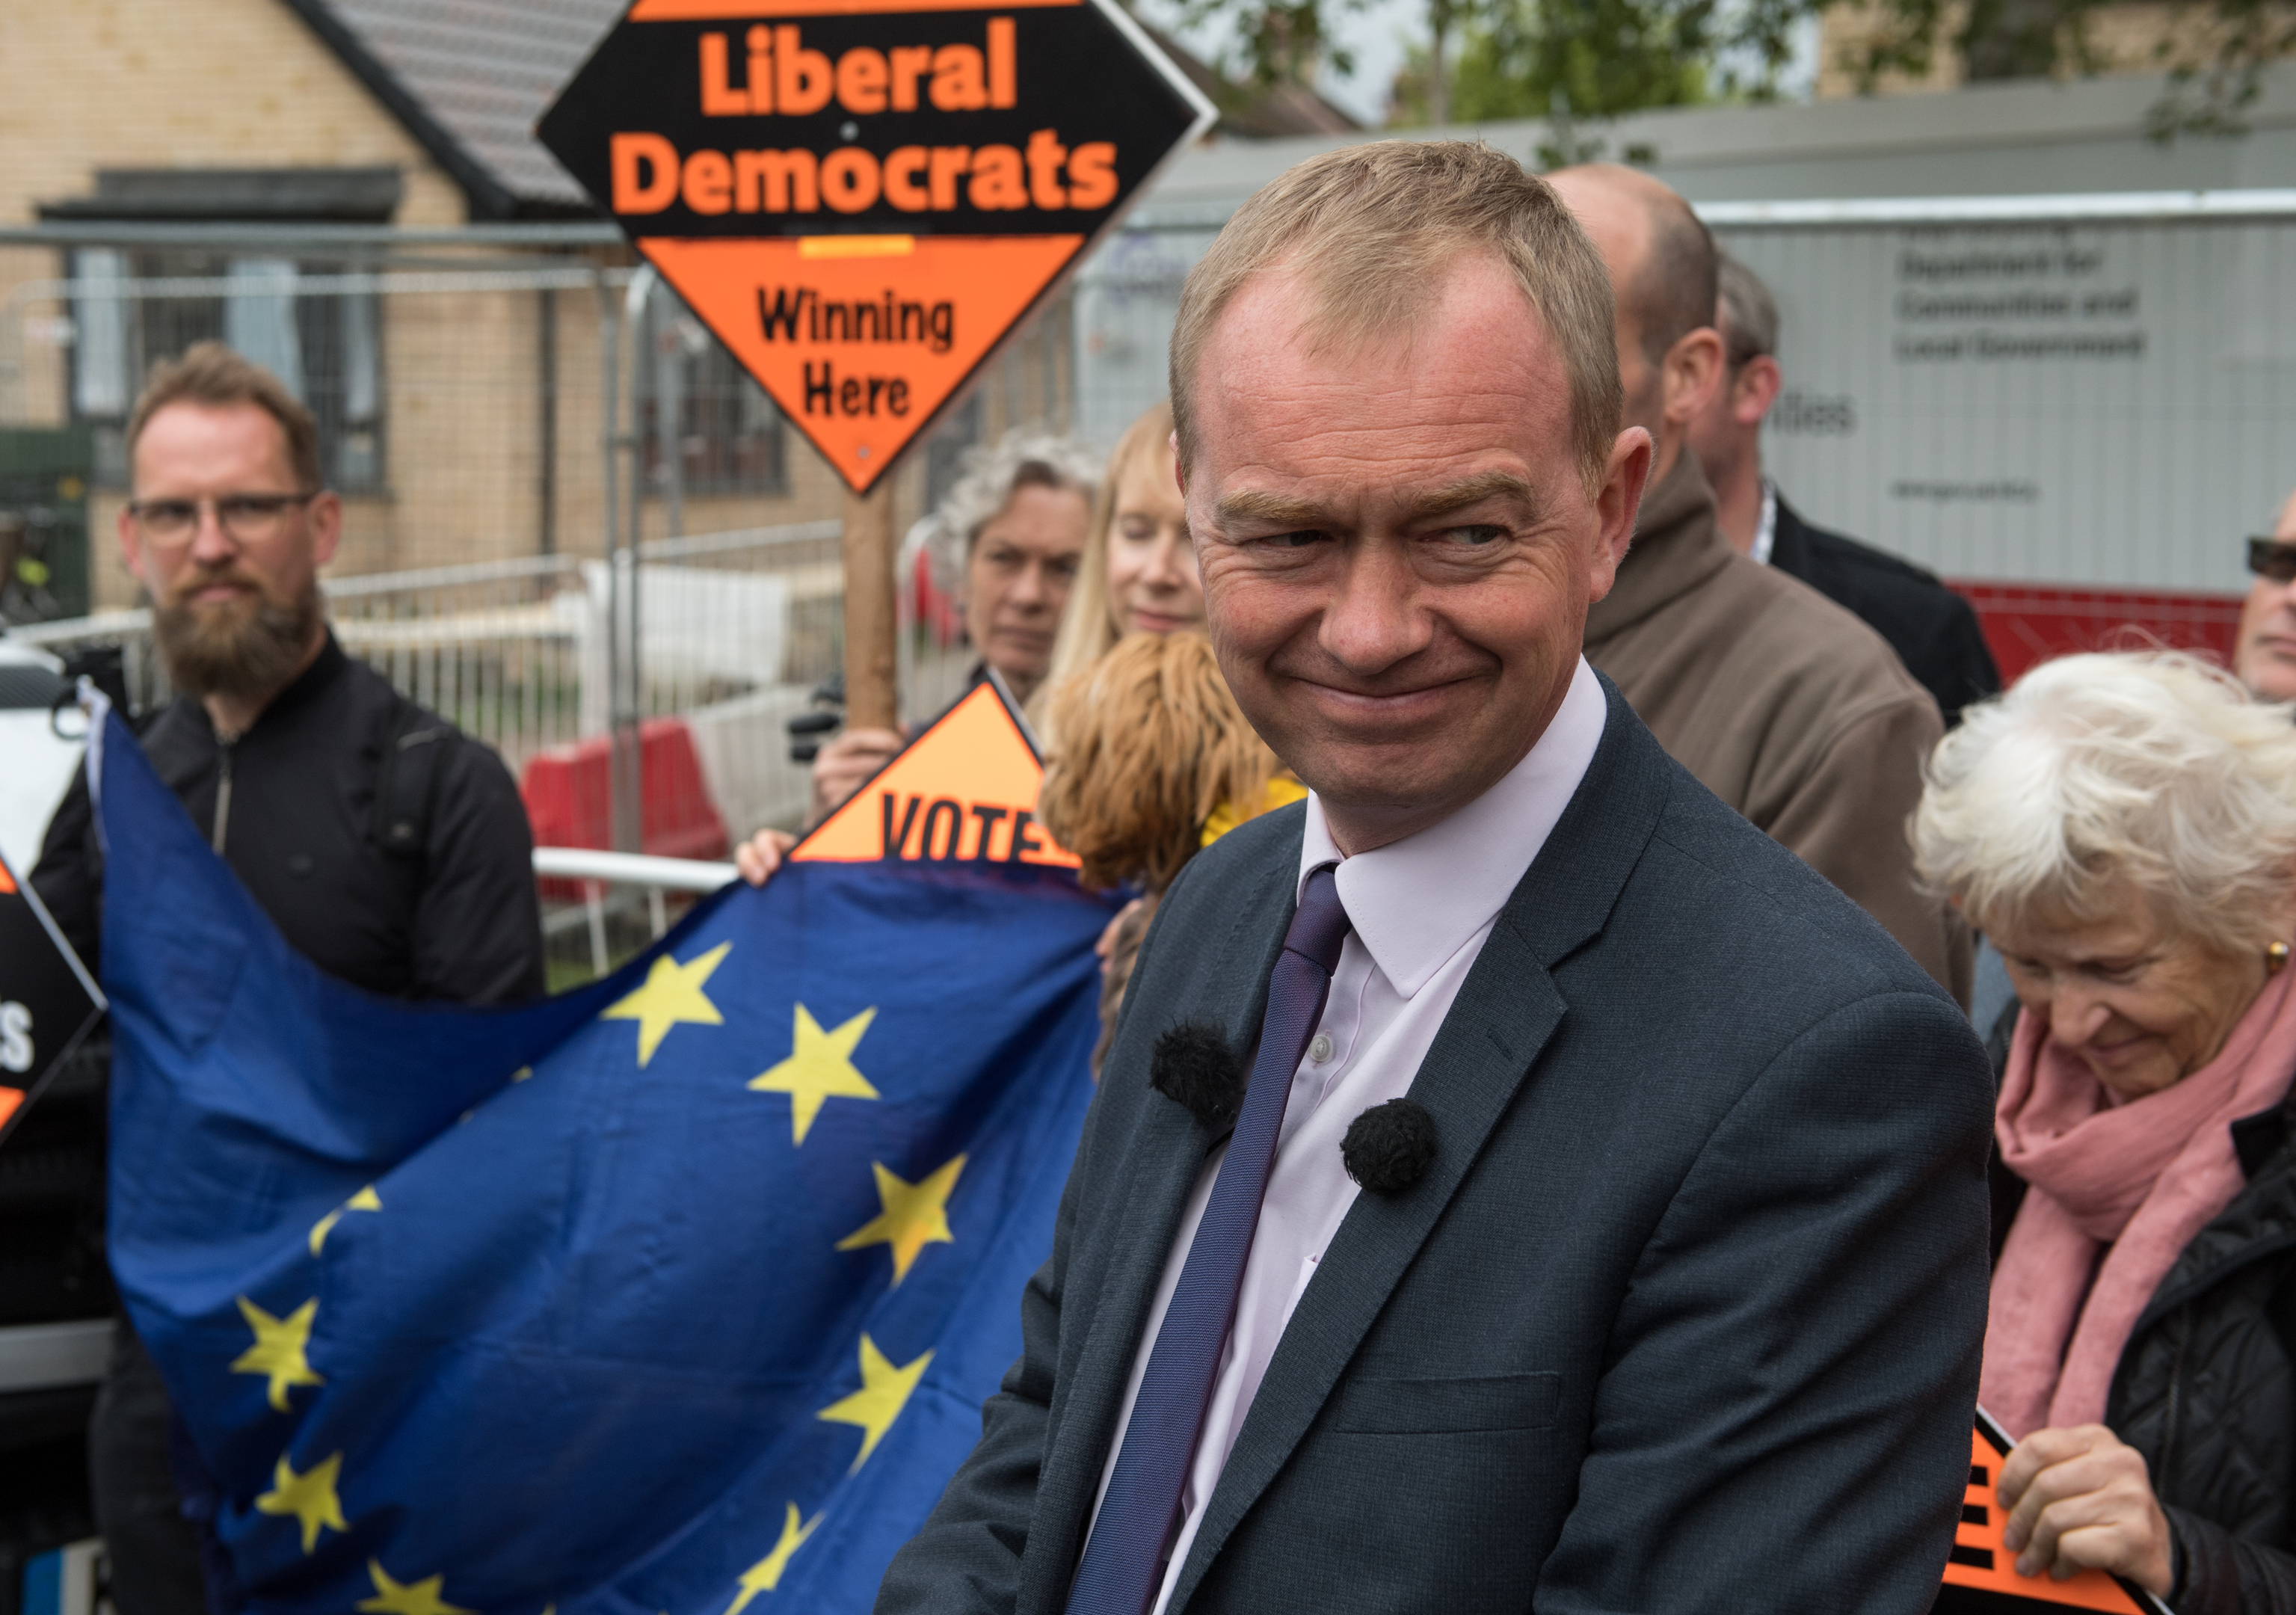 Liberal Democrats party leader Tim Farron speaks whilst campaigning (Chris J Ratcliffe/Getty Images)